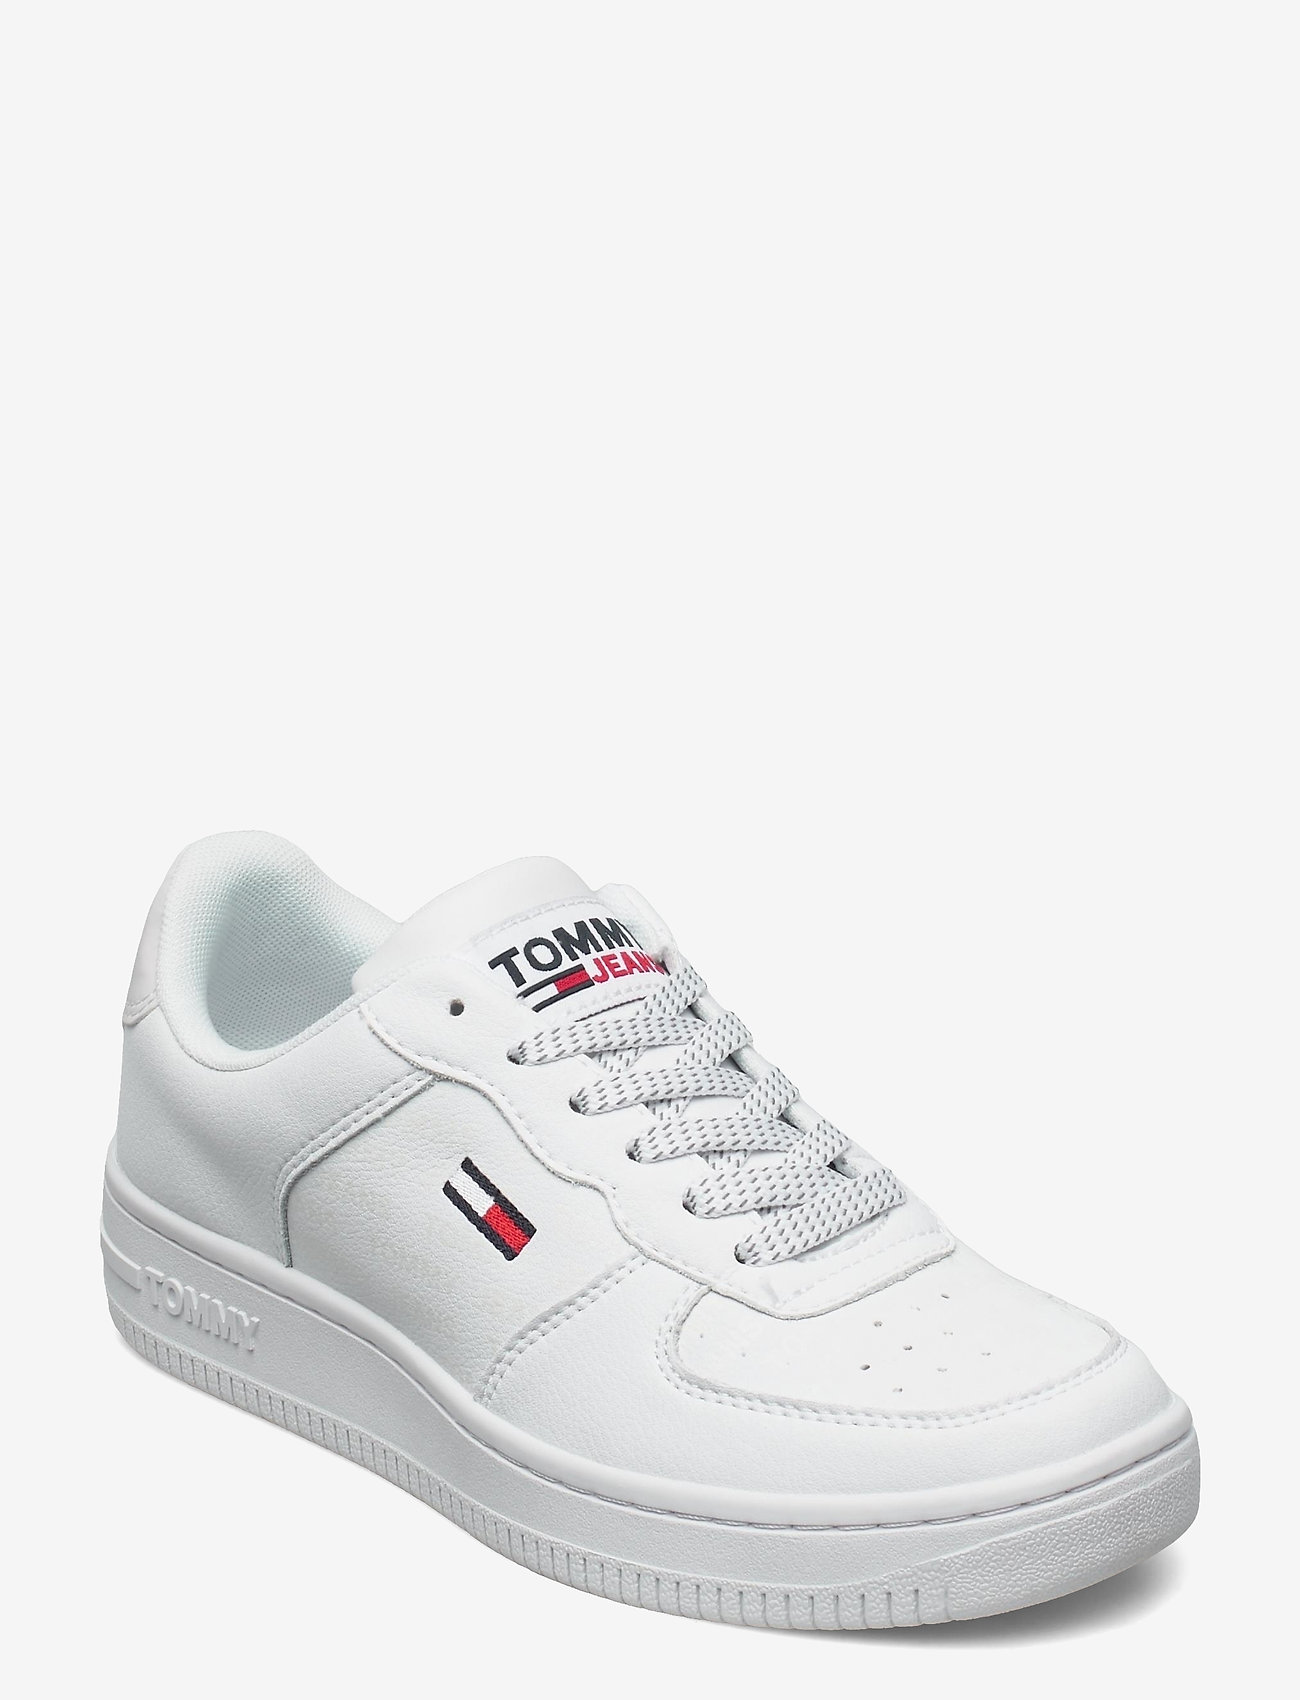 Tommy Hilfiger - WMNS REFLECTIVE BASKET - low top sneakers - white - 0